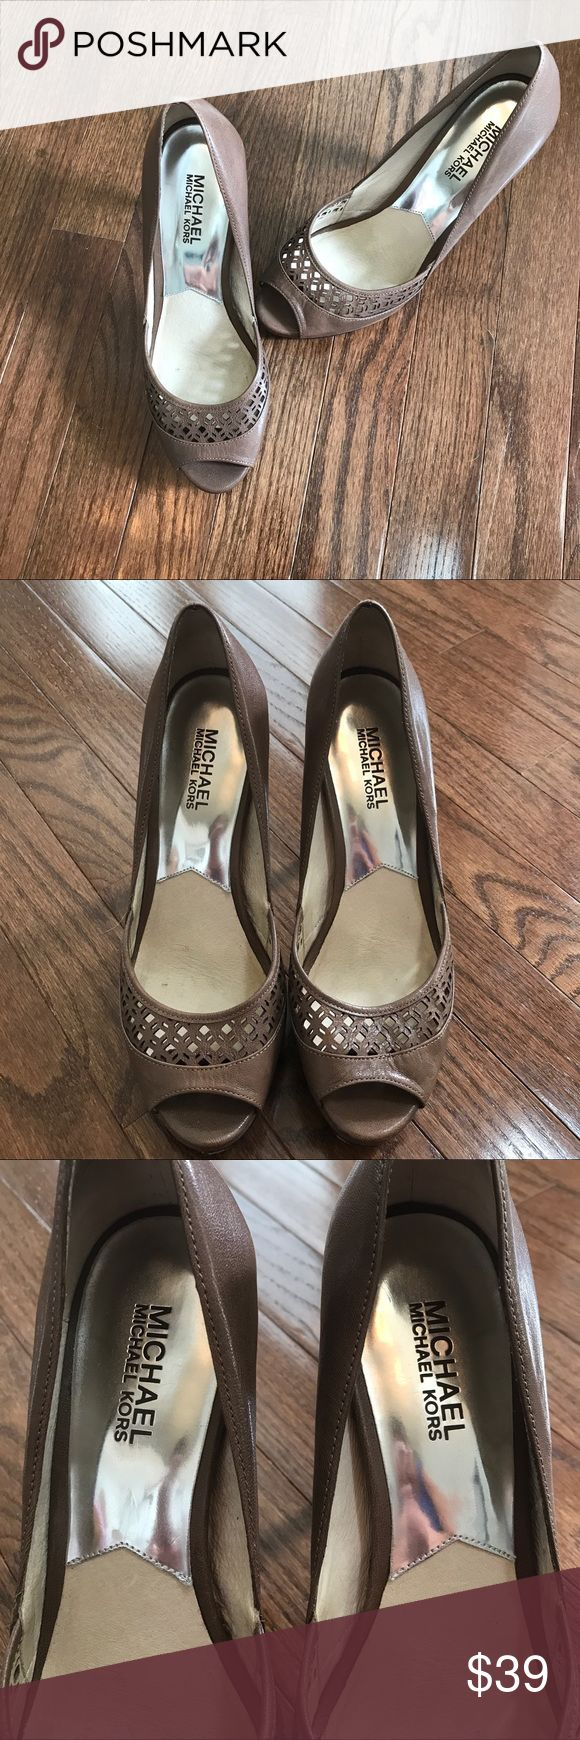 Michael Michael Kors Open-Toe Heels Size 7.5 Michael Michael Kors Open-Toe Heels Size 7.5 4 inch heel in BEAUTIFUL condition /minor signs of wear MICHAEL Michael Kors Shoes Heels